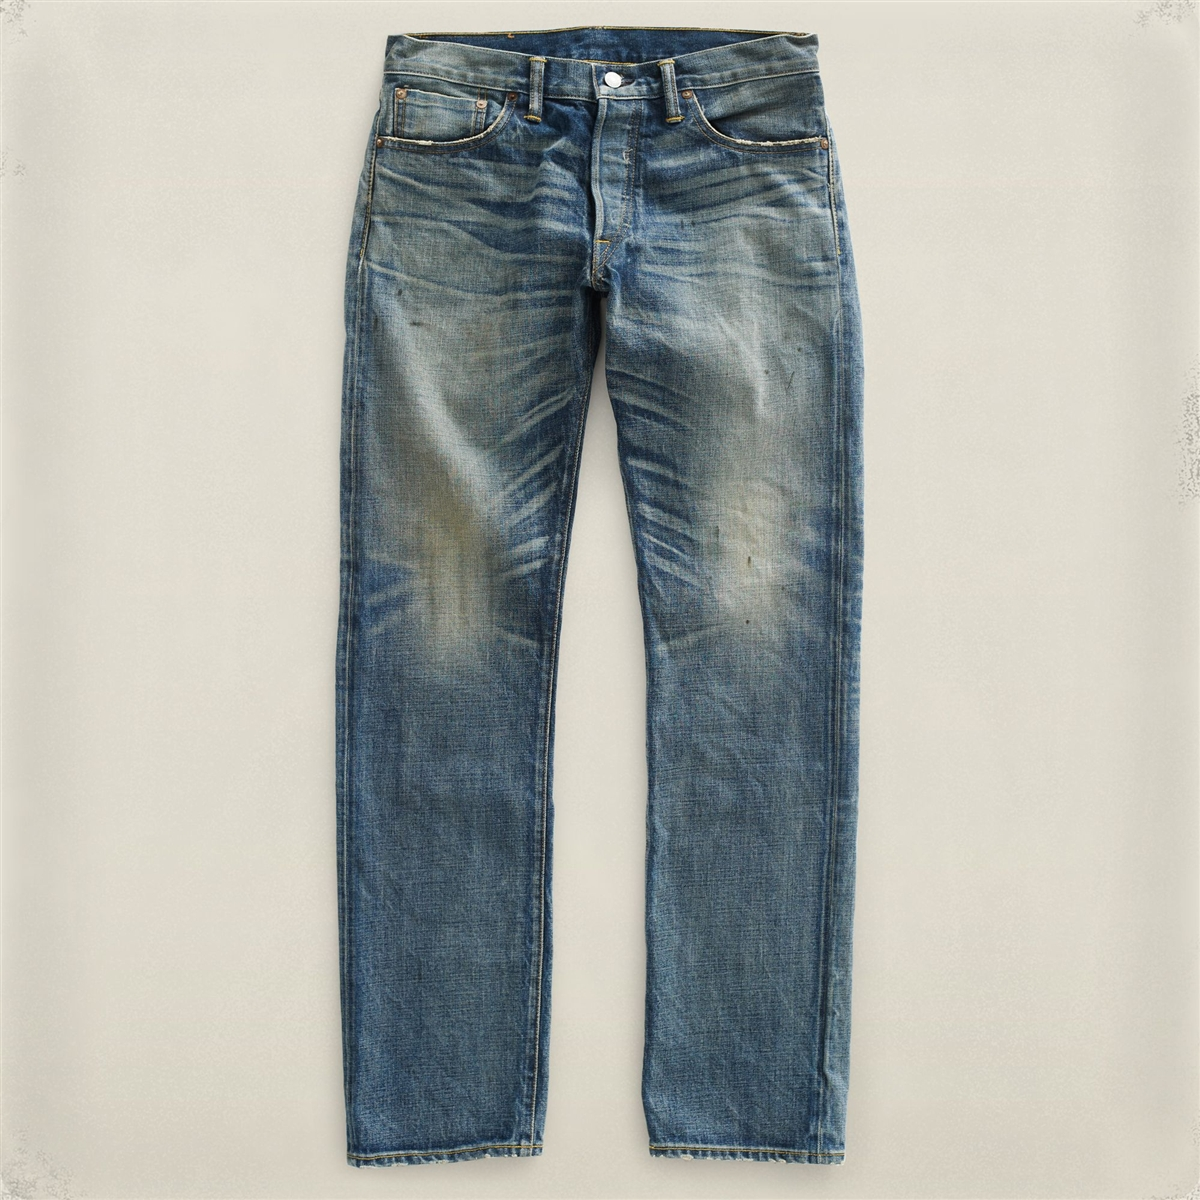 Ralph Lauren Rrl Low Straight Leg Selvedge Denim Jeans Midland Wash